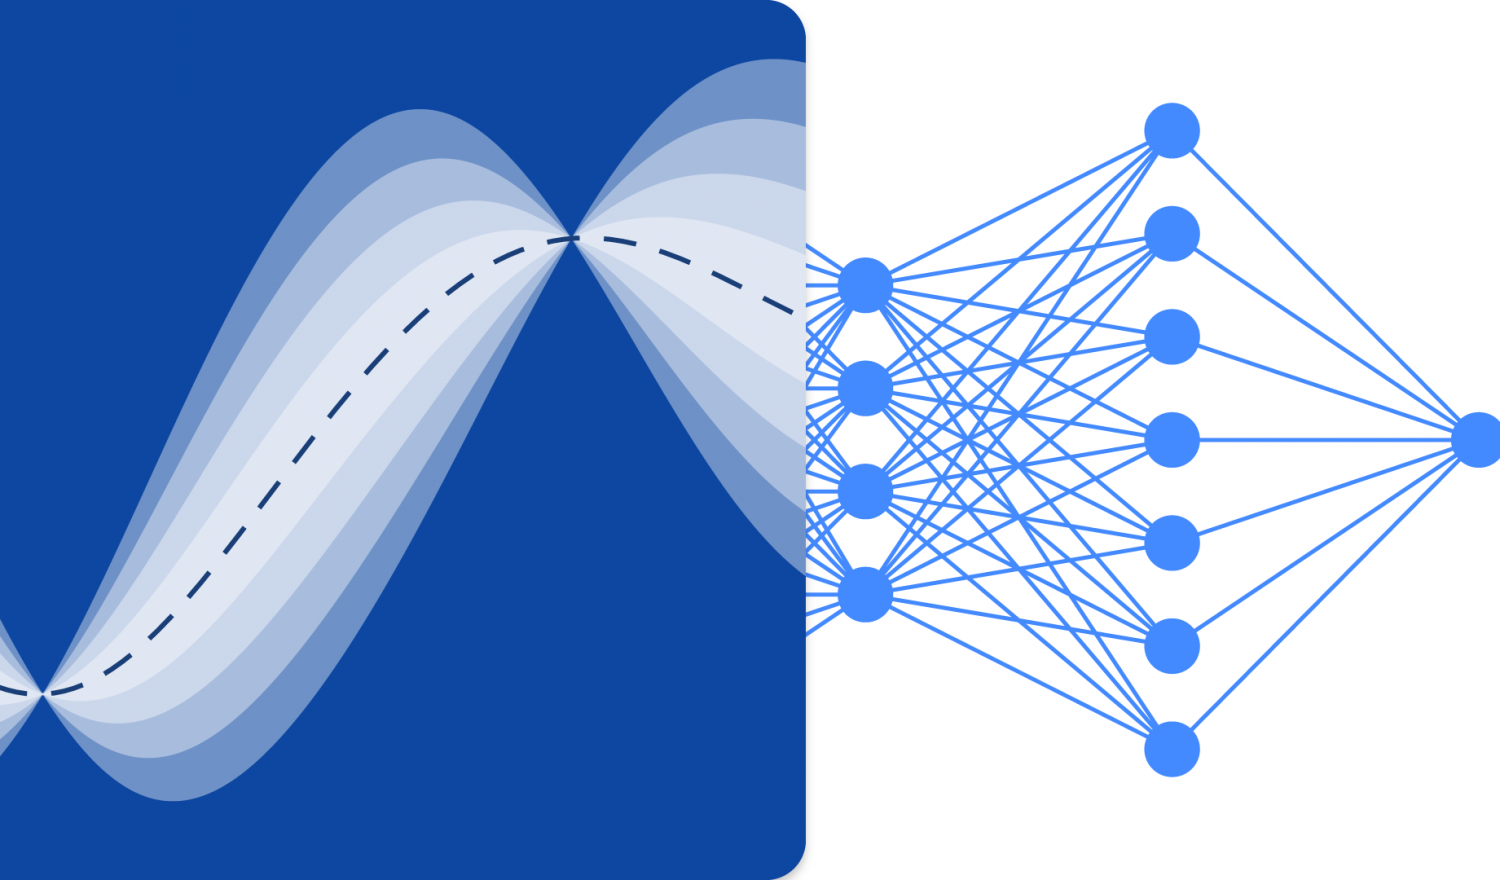 Gaussian inference overlapping a neural network